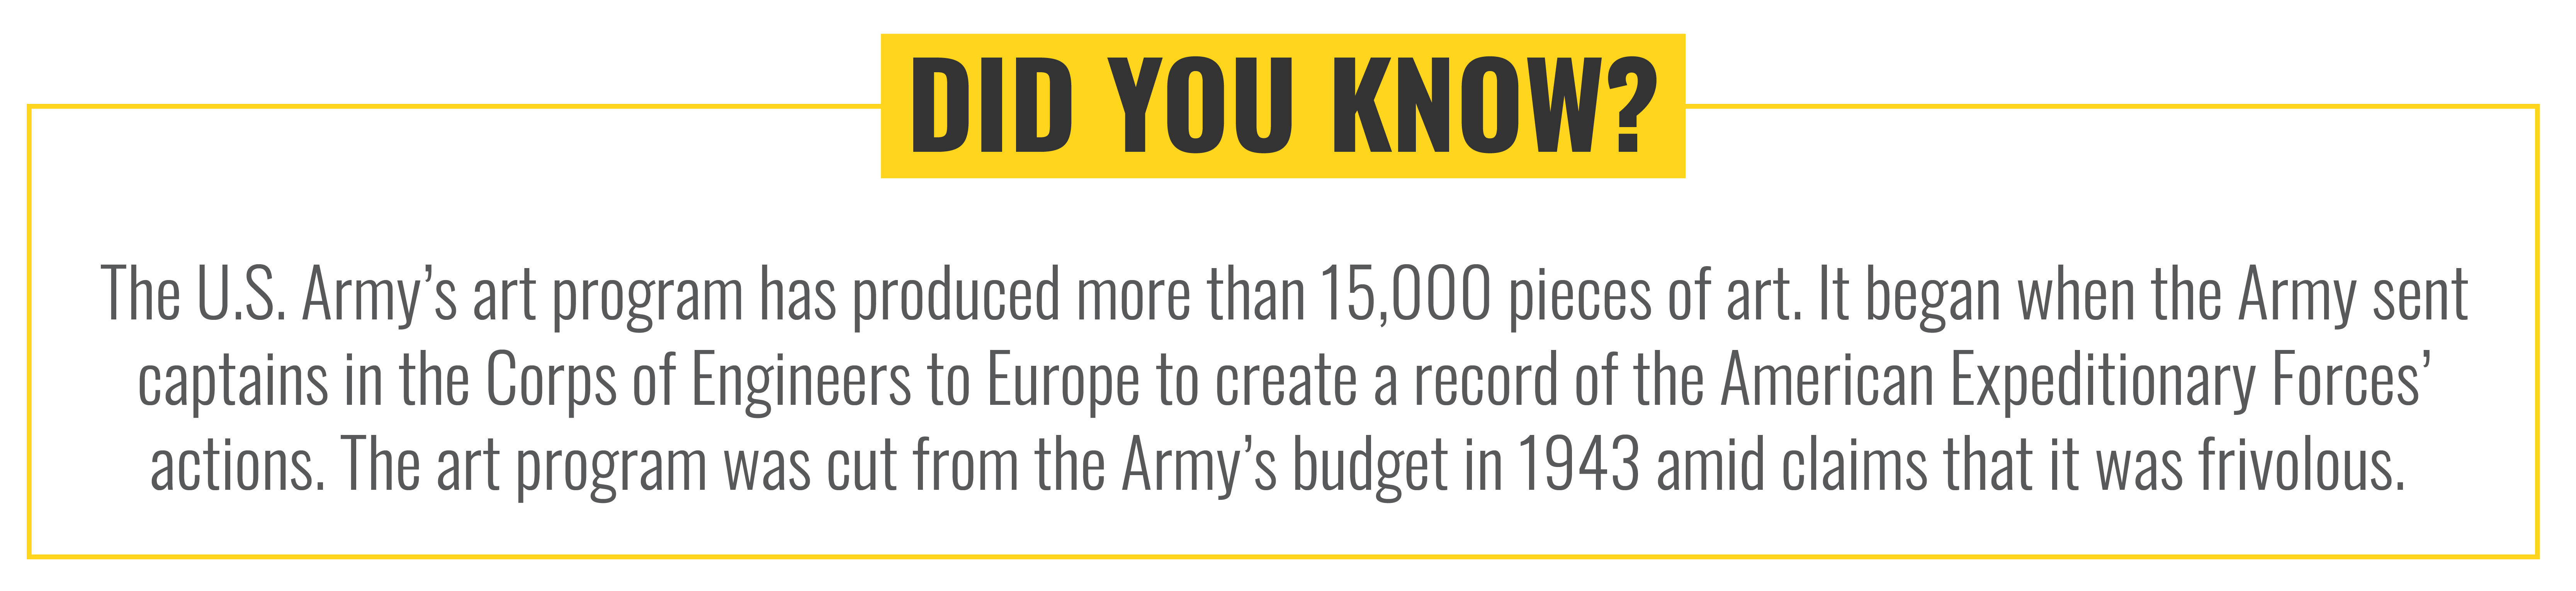 Did you know? The U.S. Army's art program has produced more than 15,000 pieces of art.